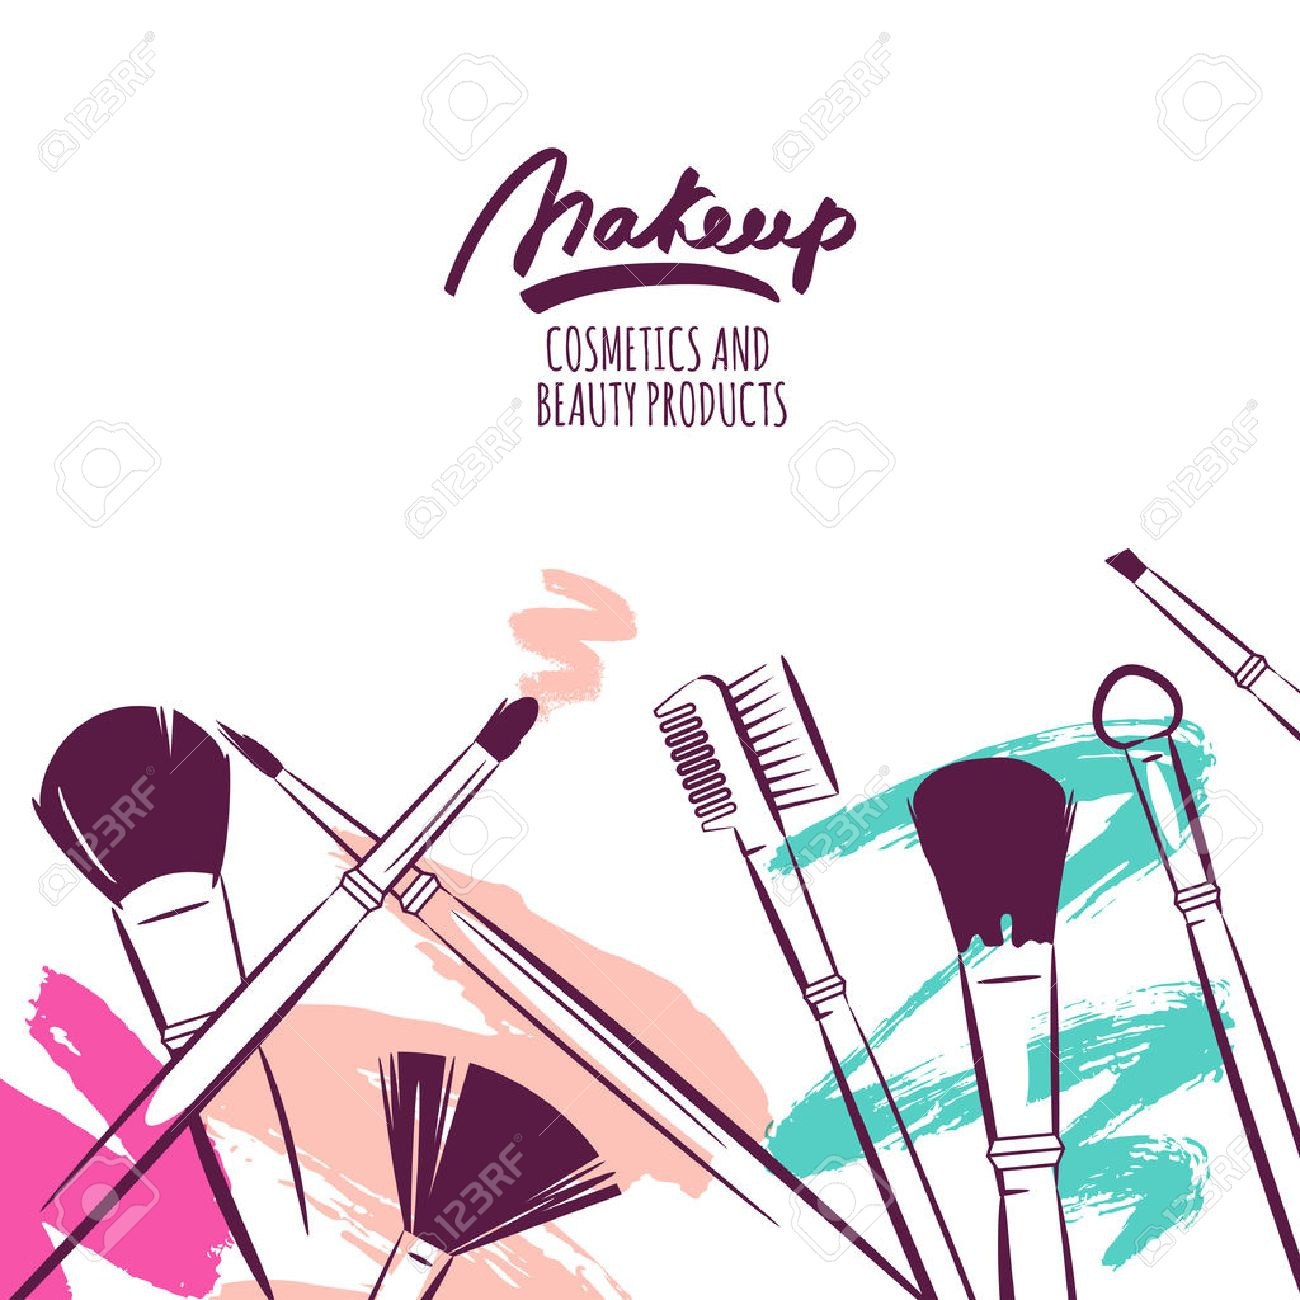 Watercolor hand drawn illustration of makeup brushes on colorful grunge background. Abstract vector banner design. Concept for beauty salon, cosmetics label, cosmetology procedures, visage and makeup. - 52176069